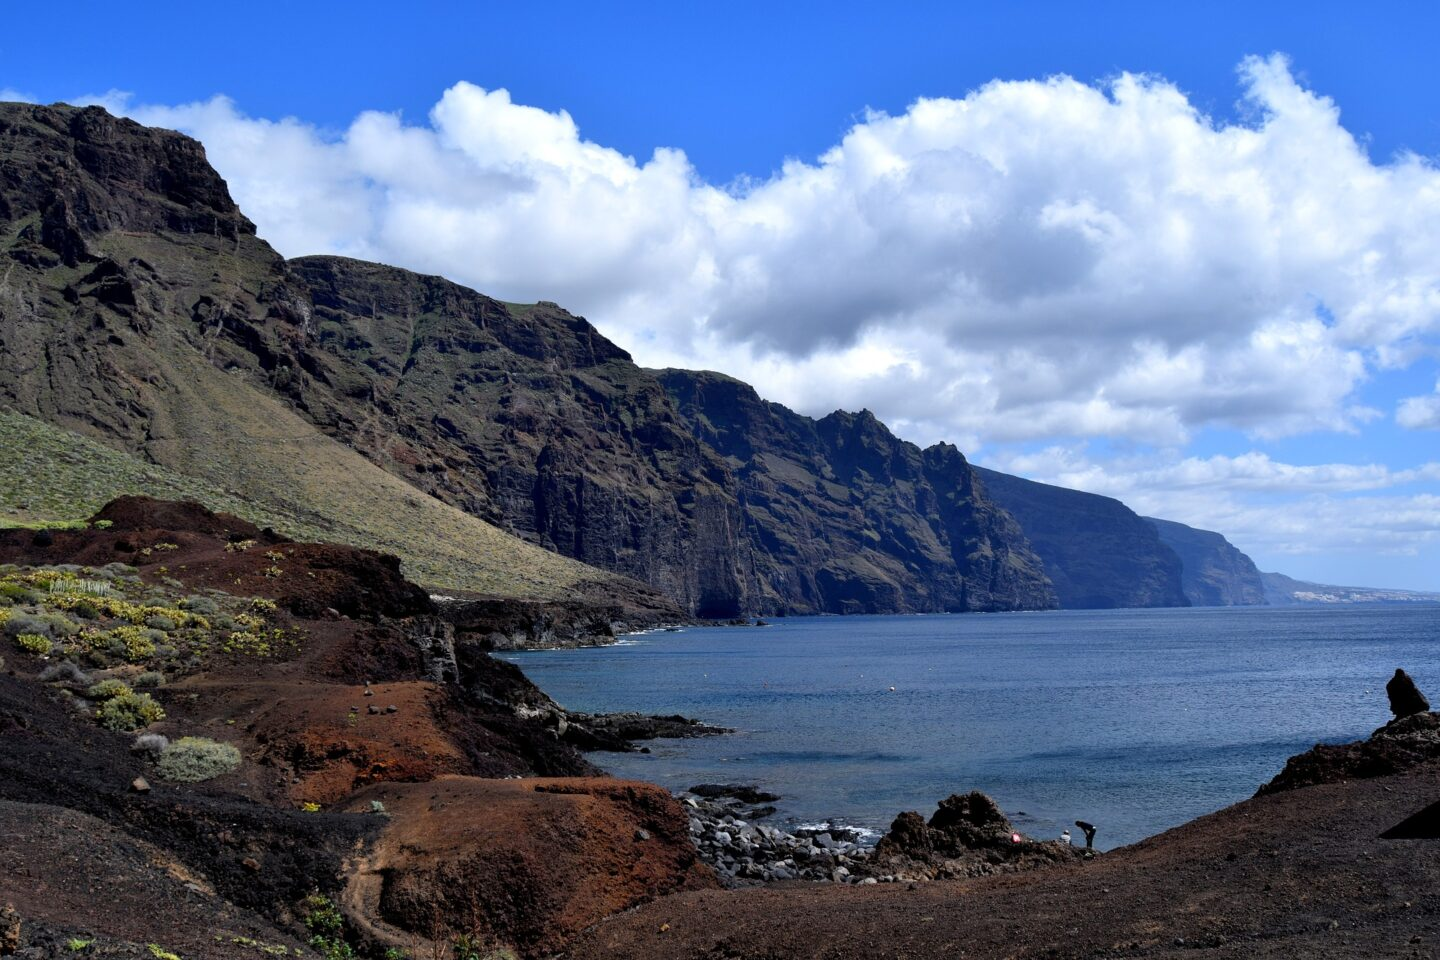 Guest Post: Spain: Five Things to Do in Los Gigantes, Tenerife